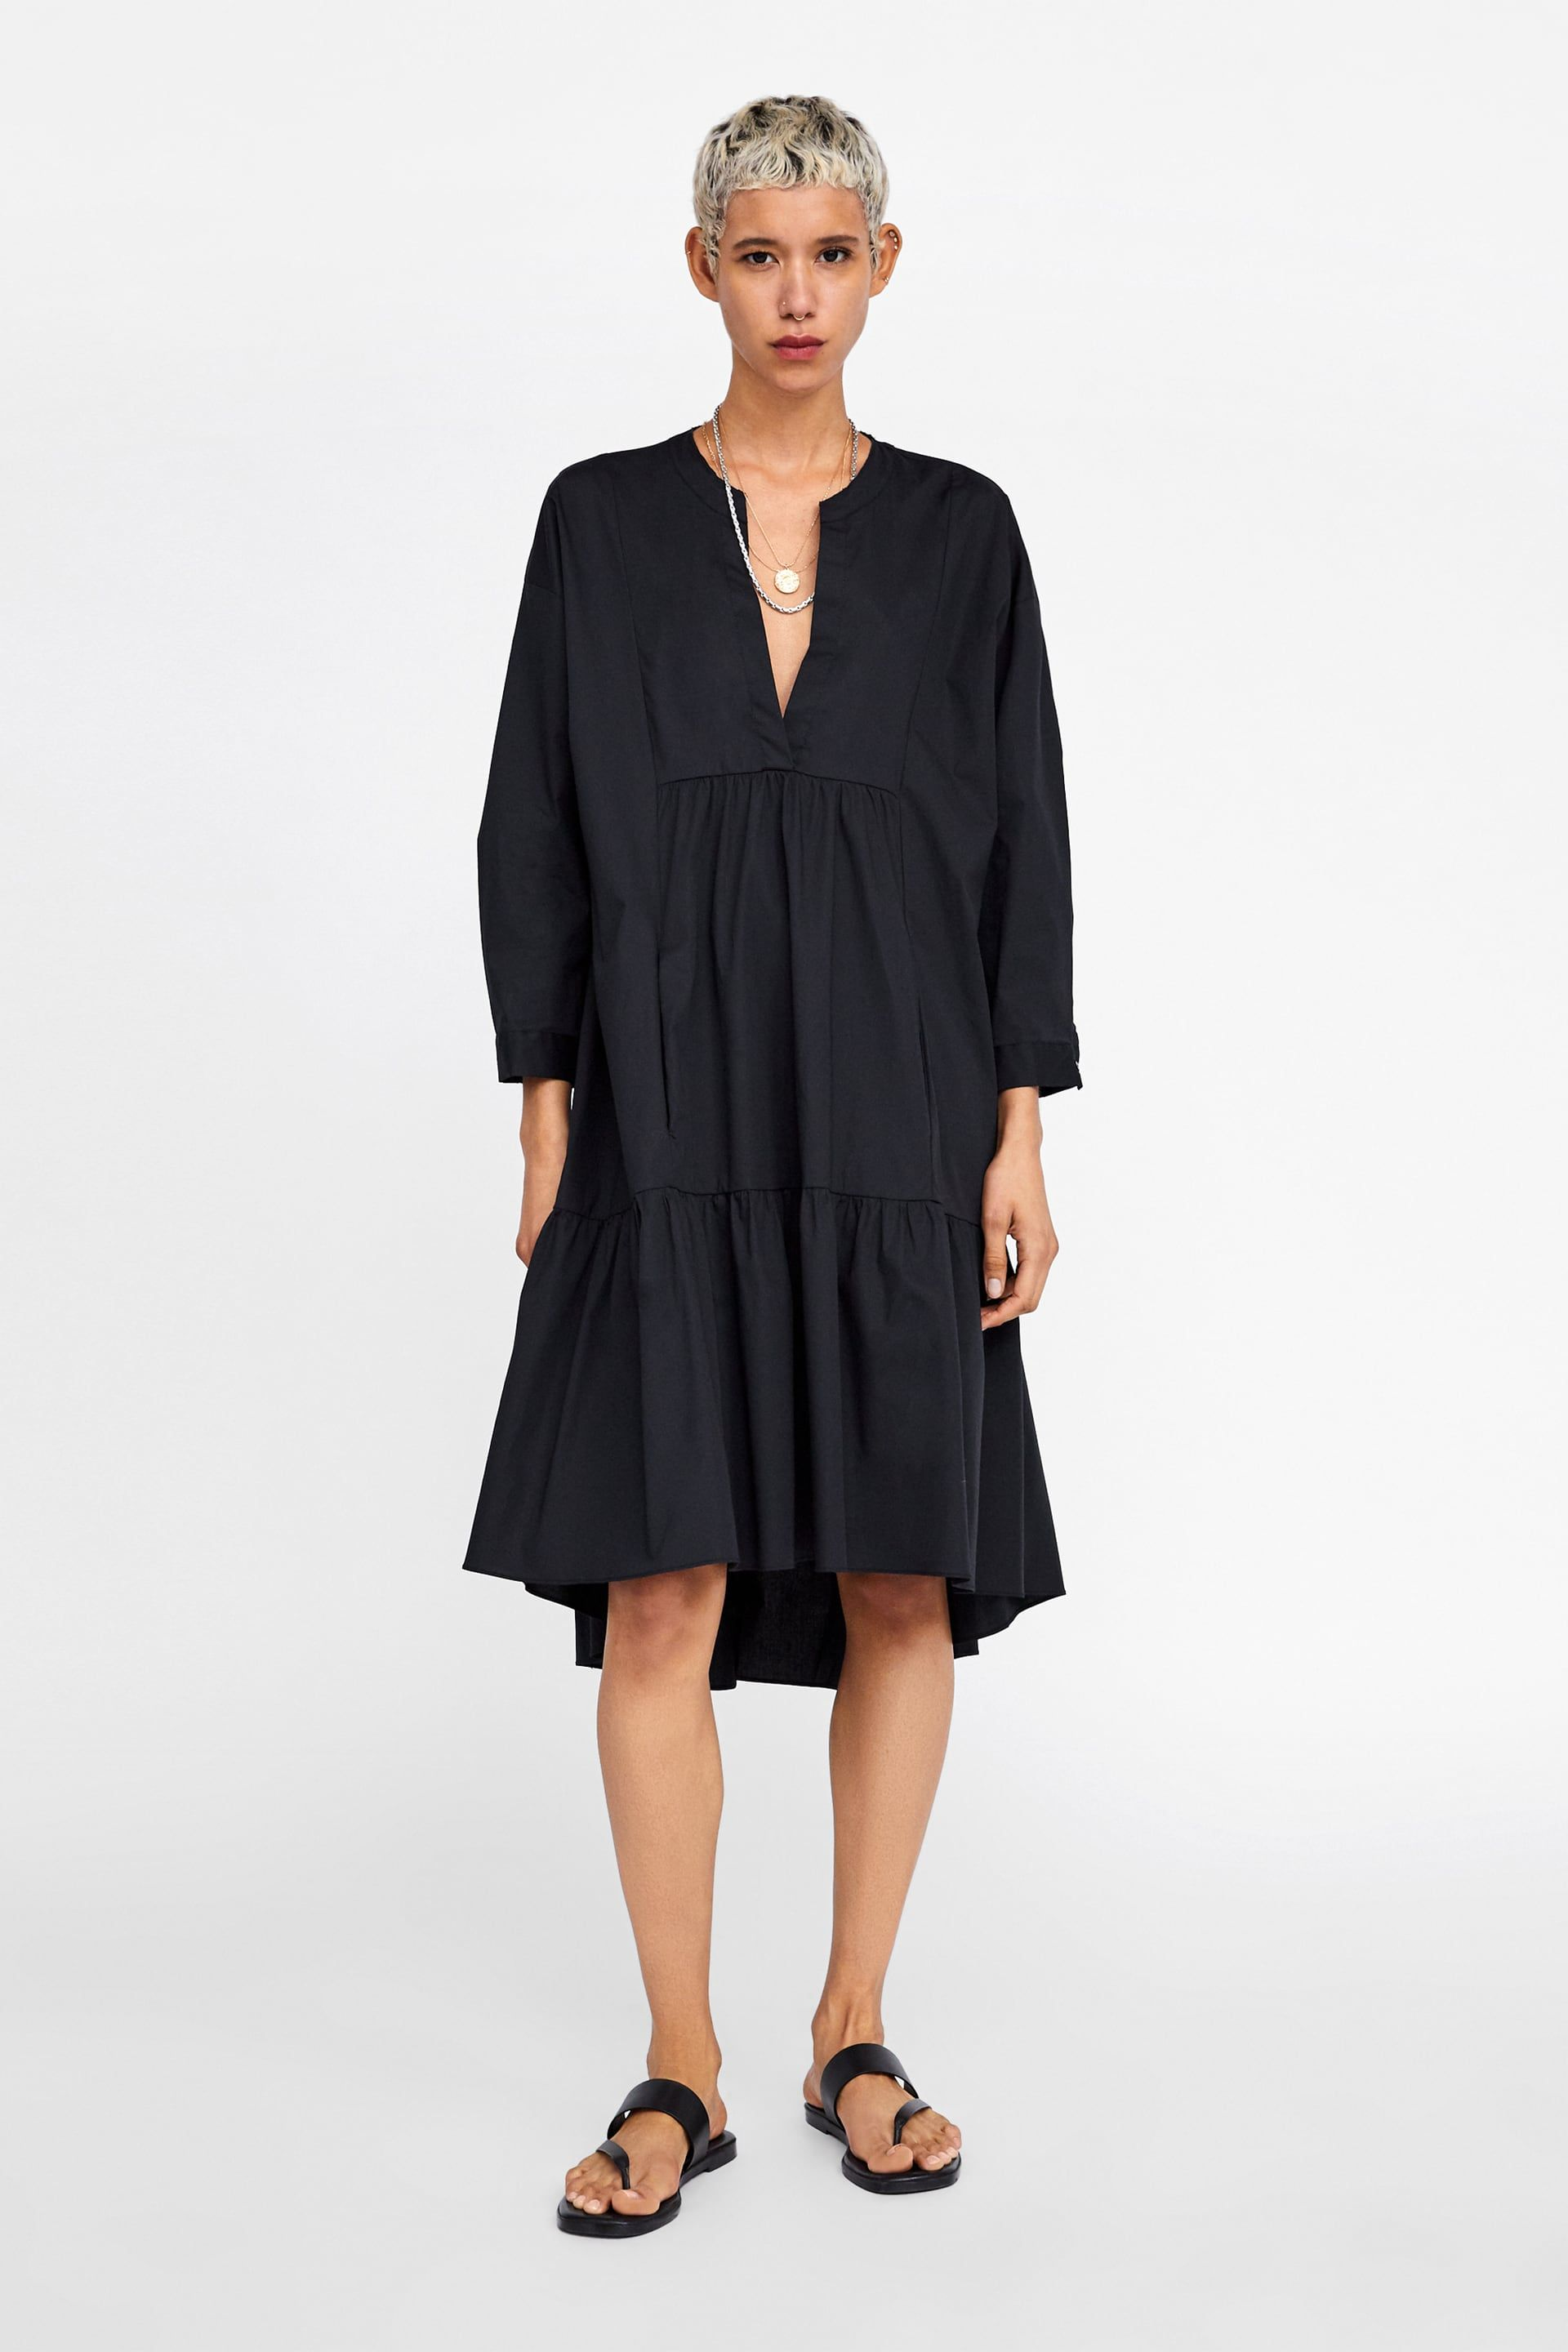 cb11cbabf5644b Long poplin dress in 2019 | T H R E A D S | Poplin dress, Dresses ...